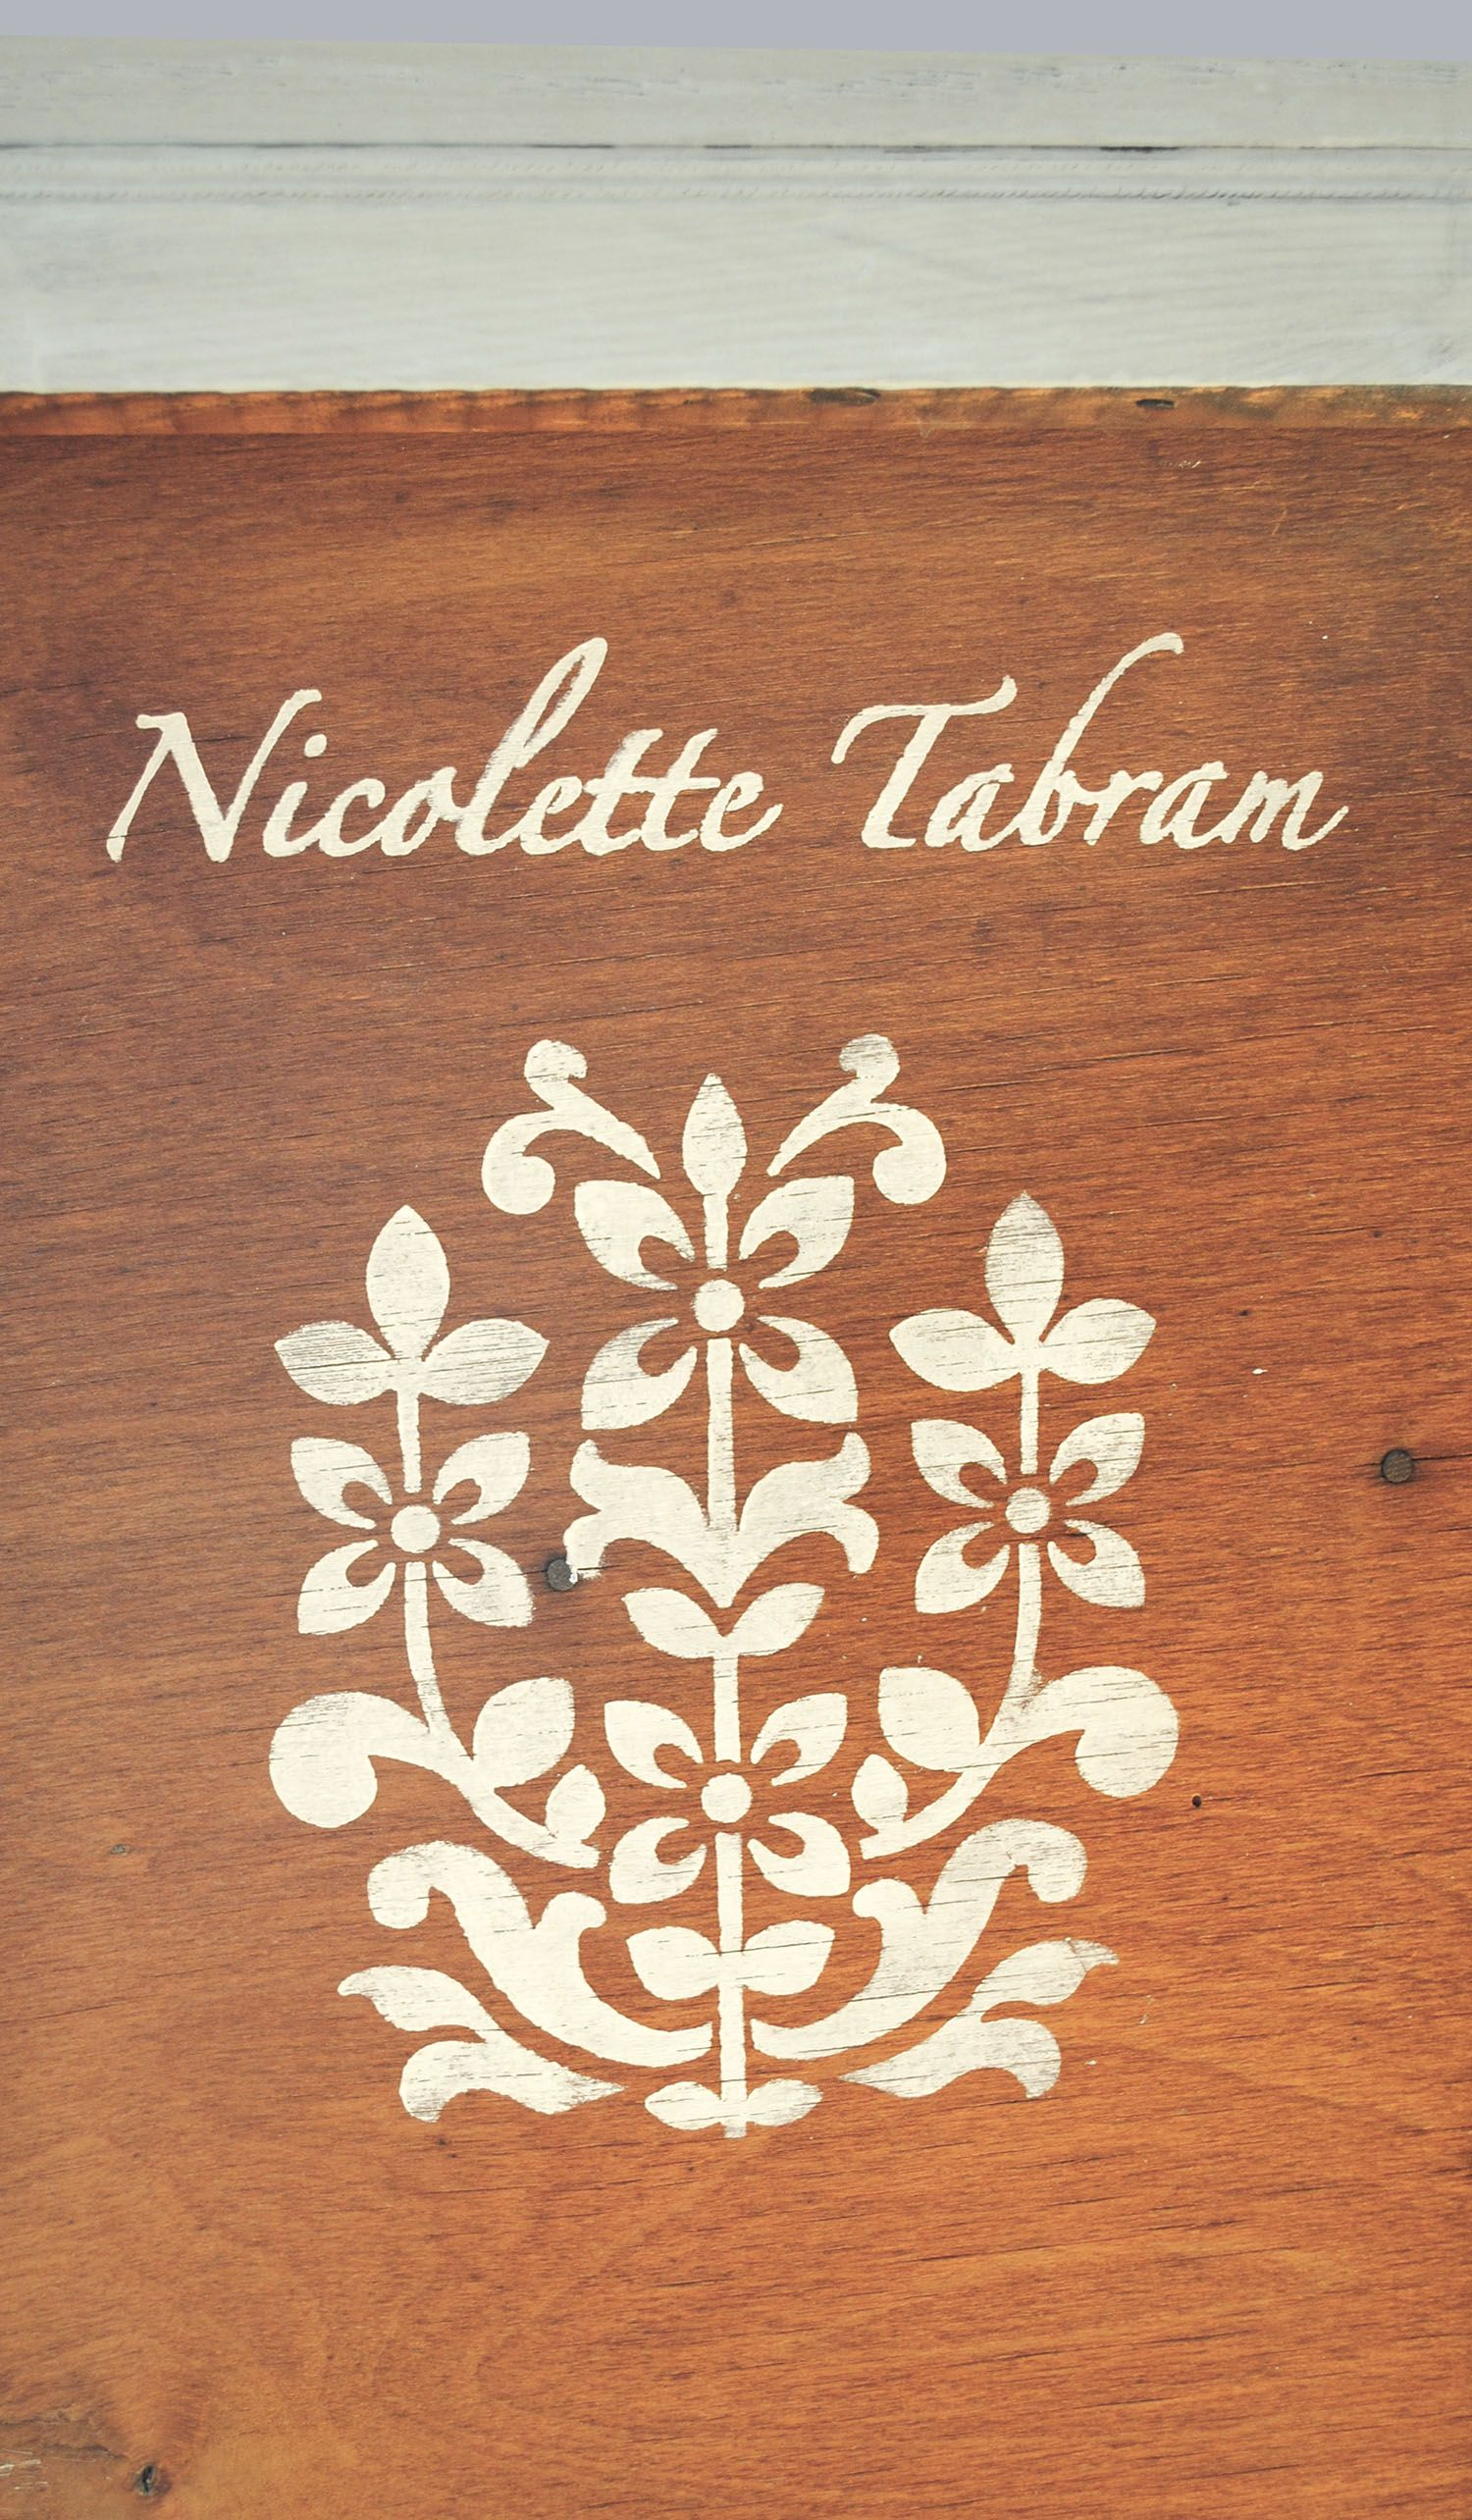 A little surprise on the back of a chest of drawers using the Jaipur stencil  nicolettetabram.co.uk  #stencils #nicolettetabramstencils #paintedfurniture